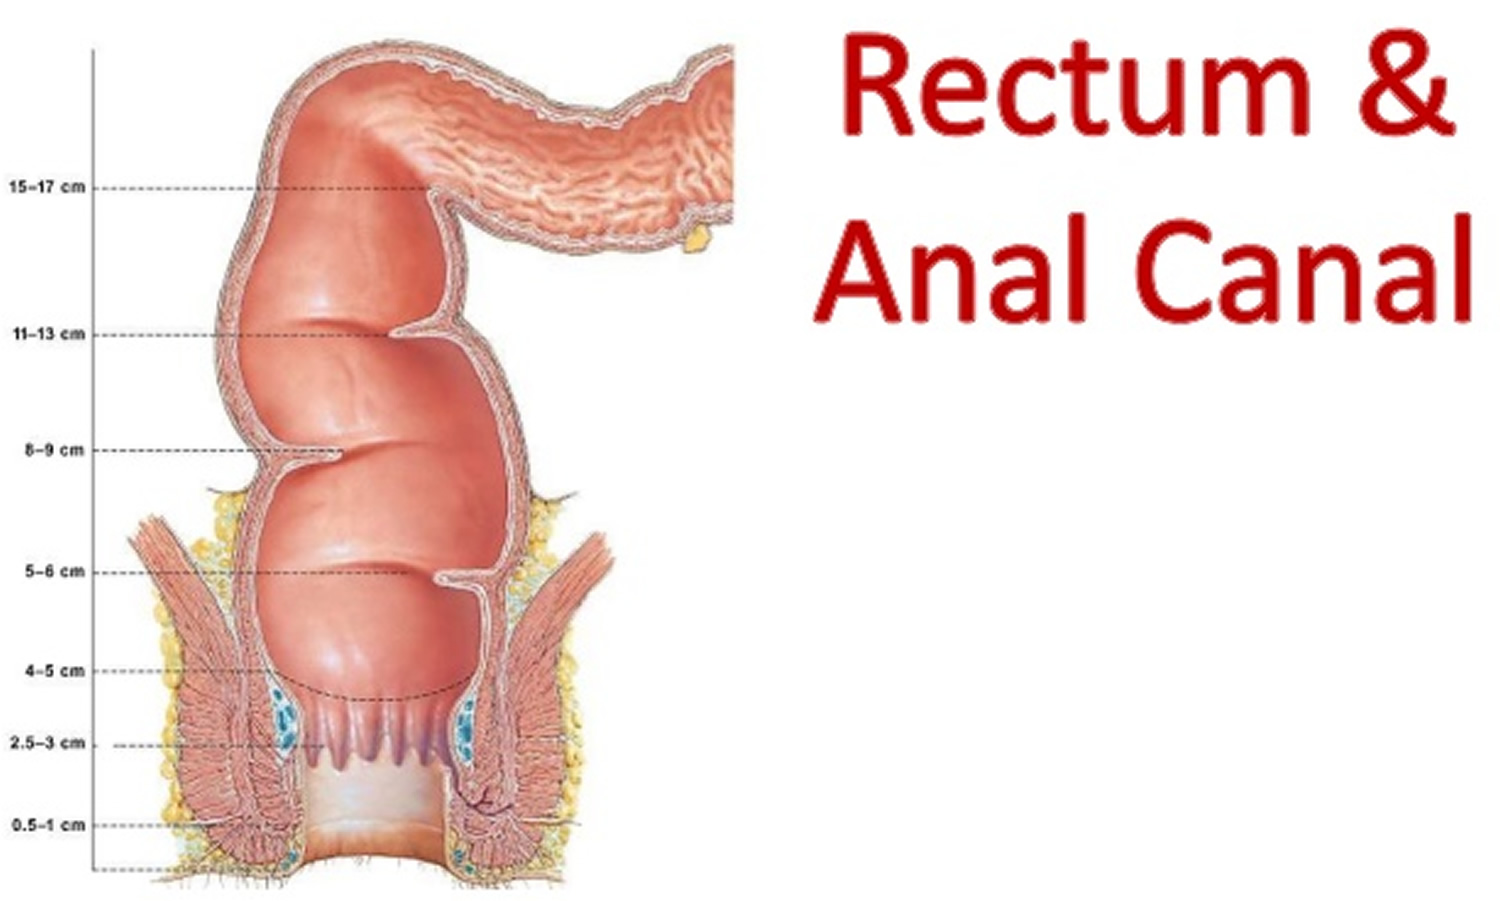 Rectum Anatomy And Rectum Function Differentiate Anus Vs Rectum